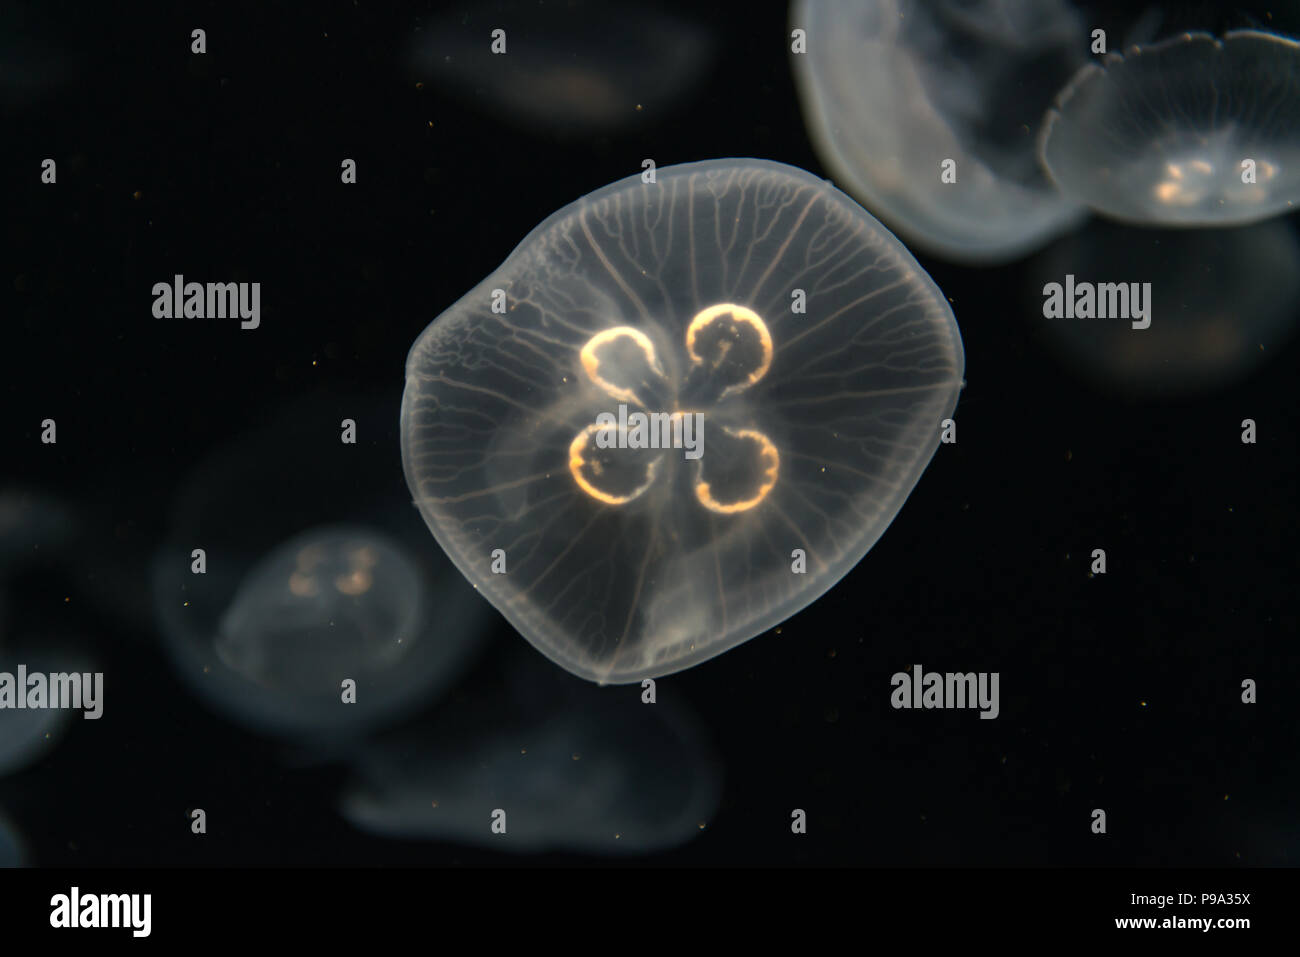 Jellyfish or Rhizostoma pulmo floating in aquarium - Stock Image